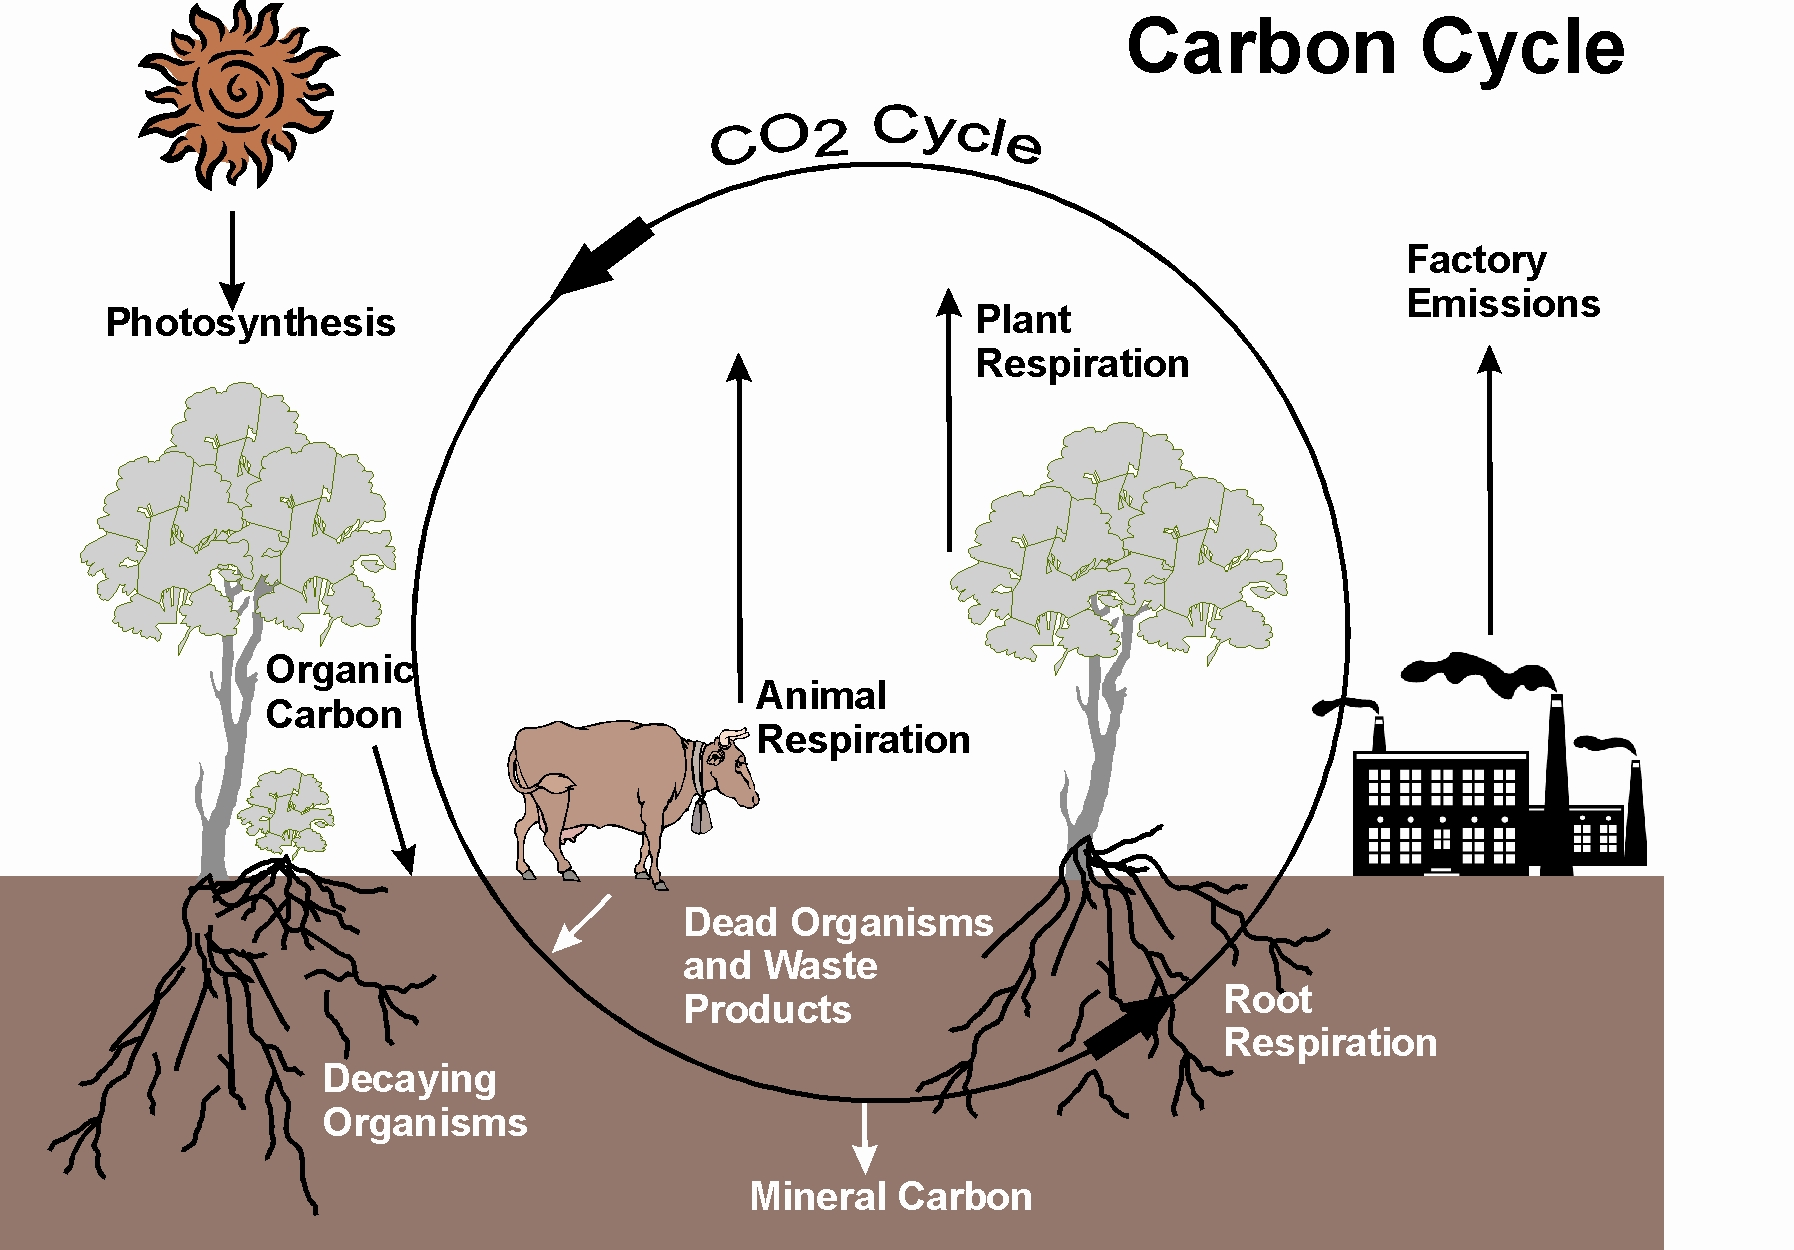 Carbon cycle essay nitrogen cycle essay pdf physics thesis ideas how the boring carbon cycle resilience the boring carbon cycle ccuart Gallery